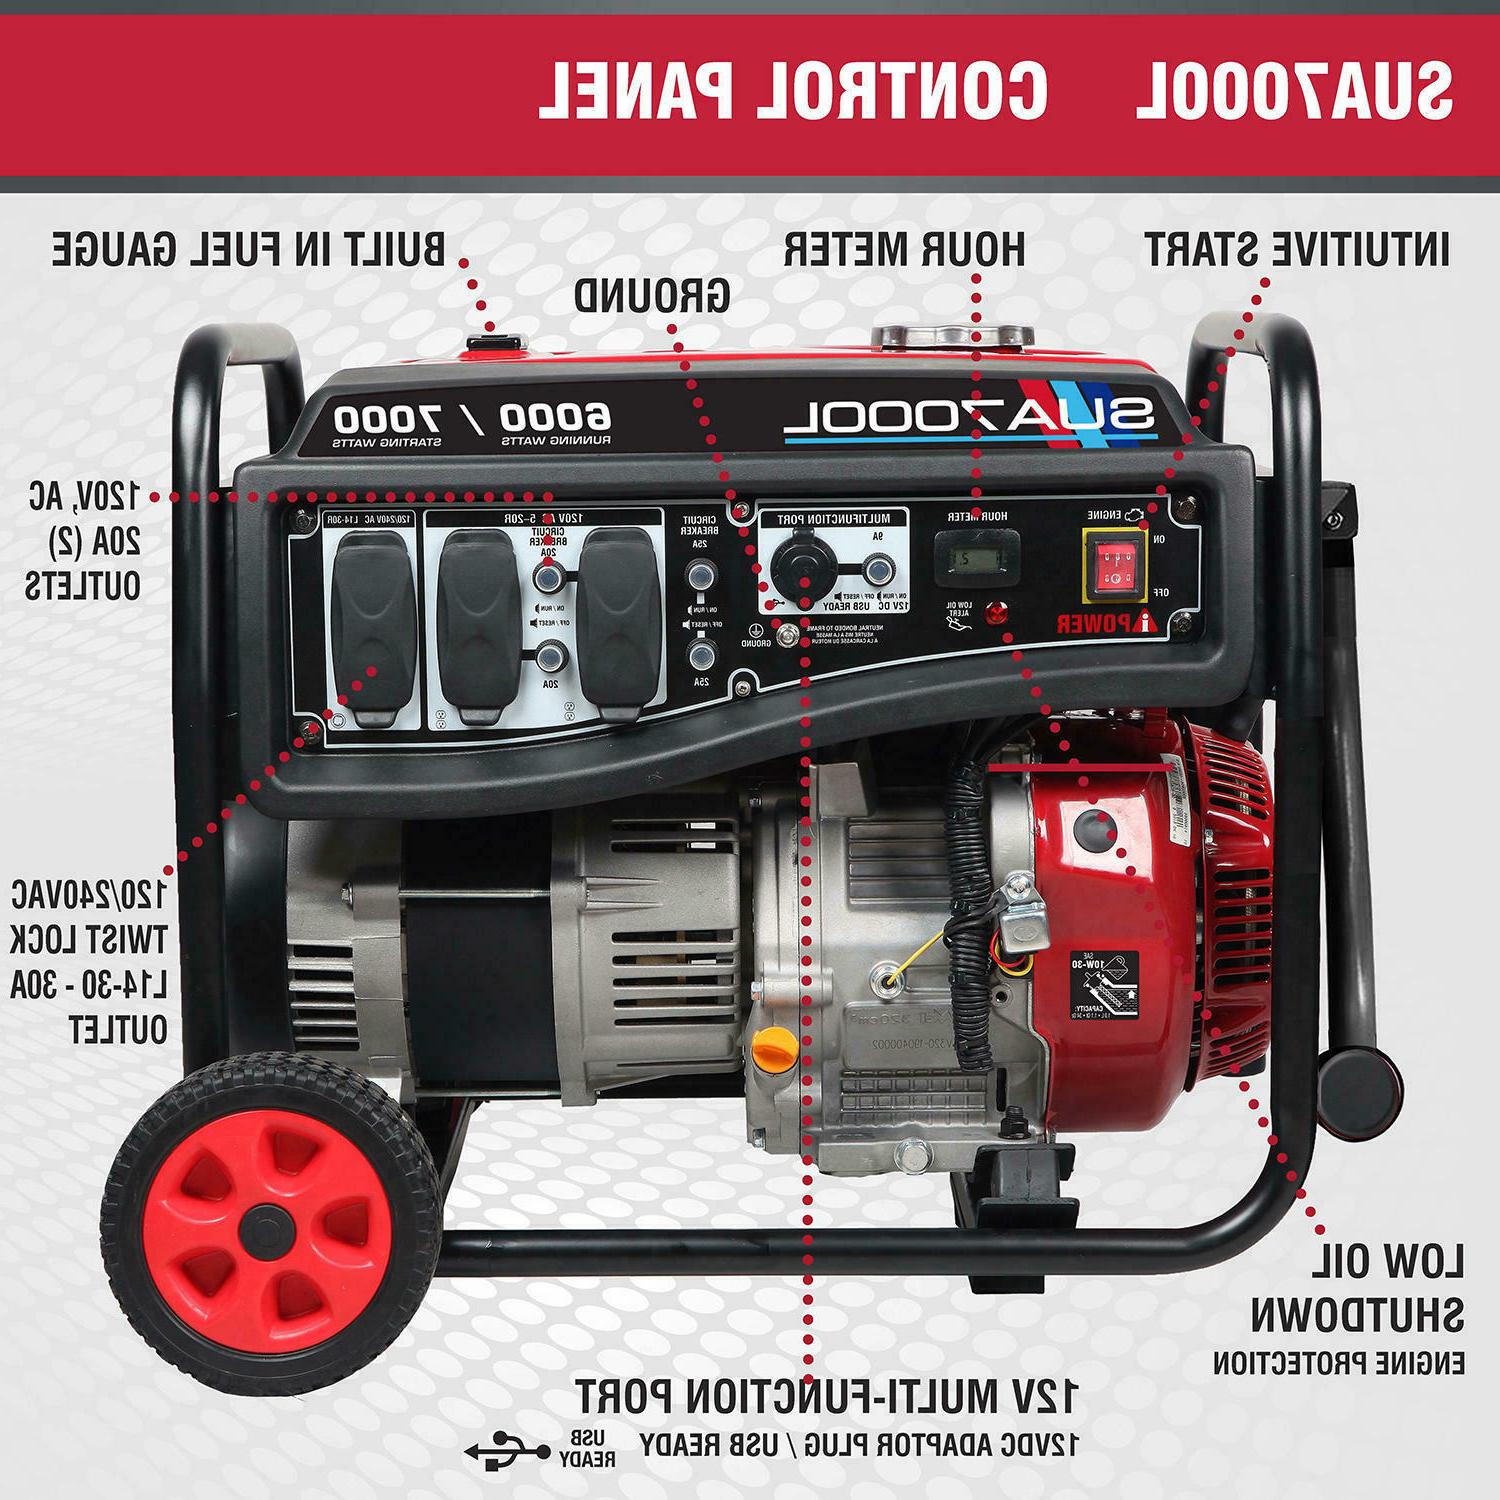 A-iPower Watt Gasoline Portable Generator Kit Free